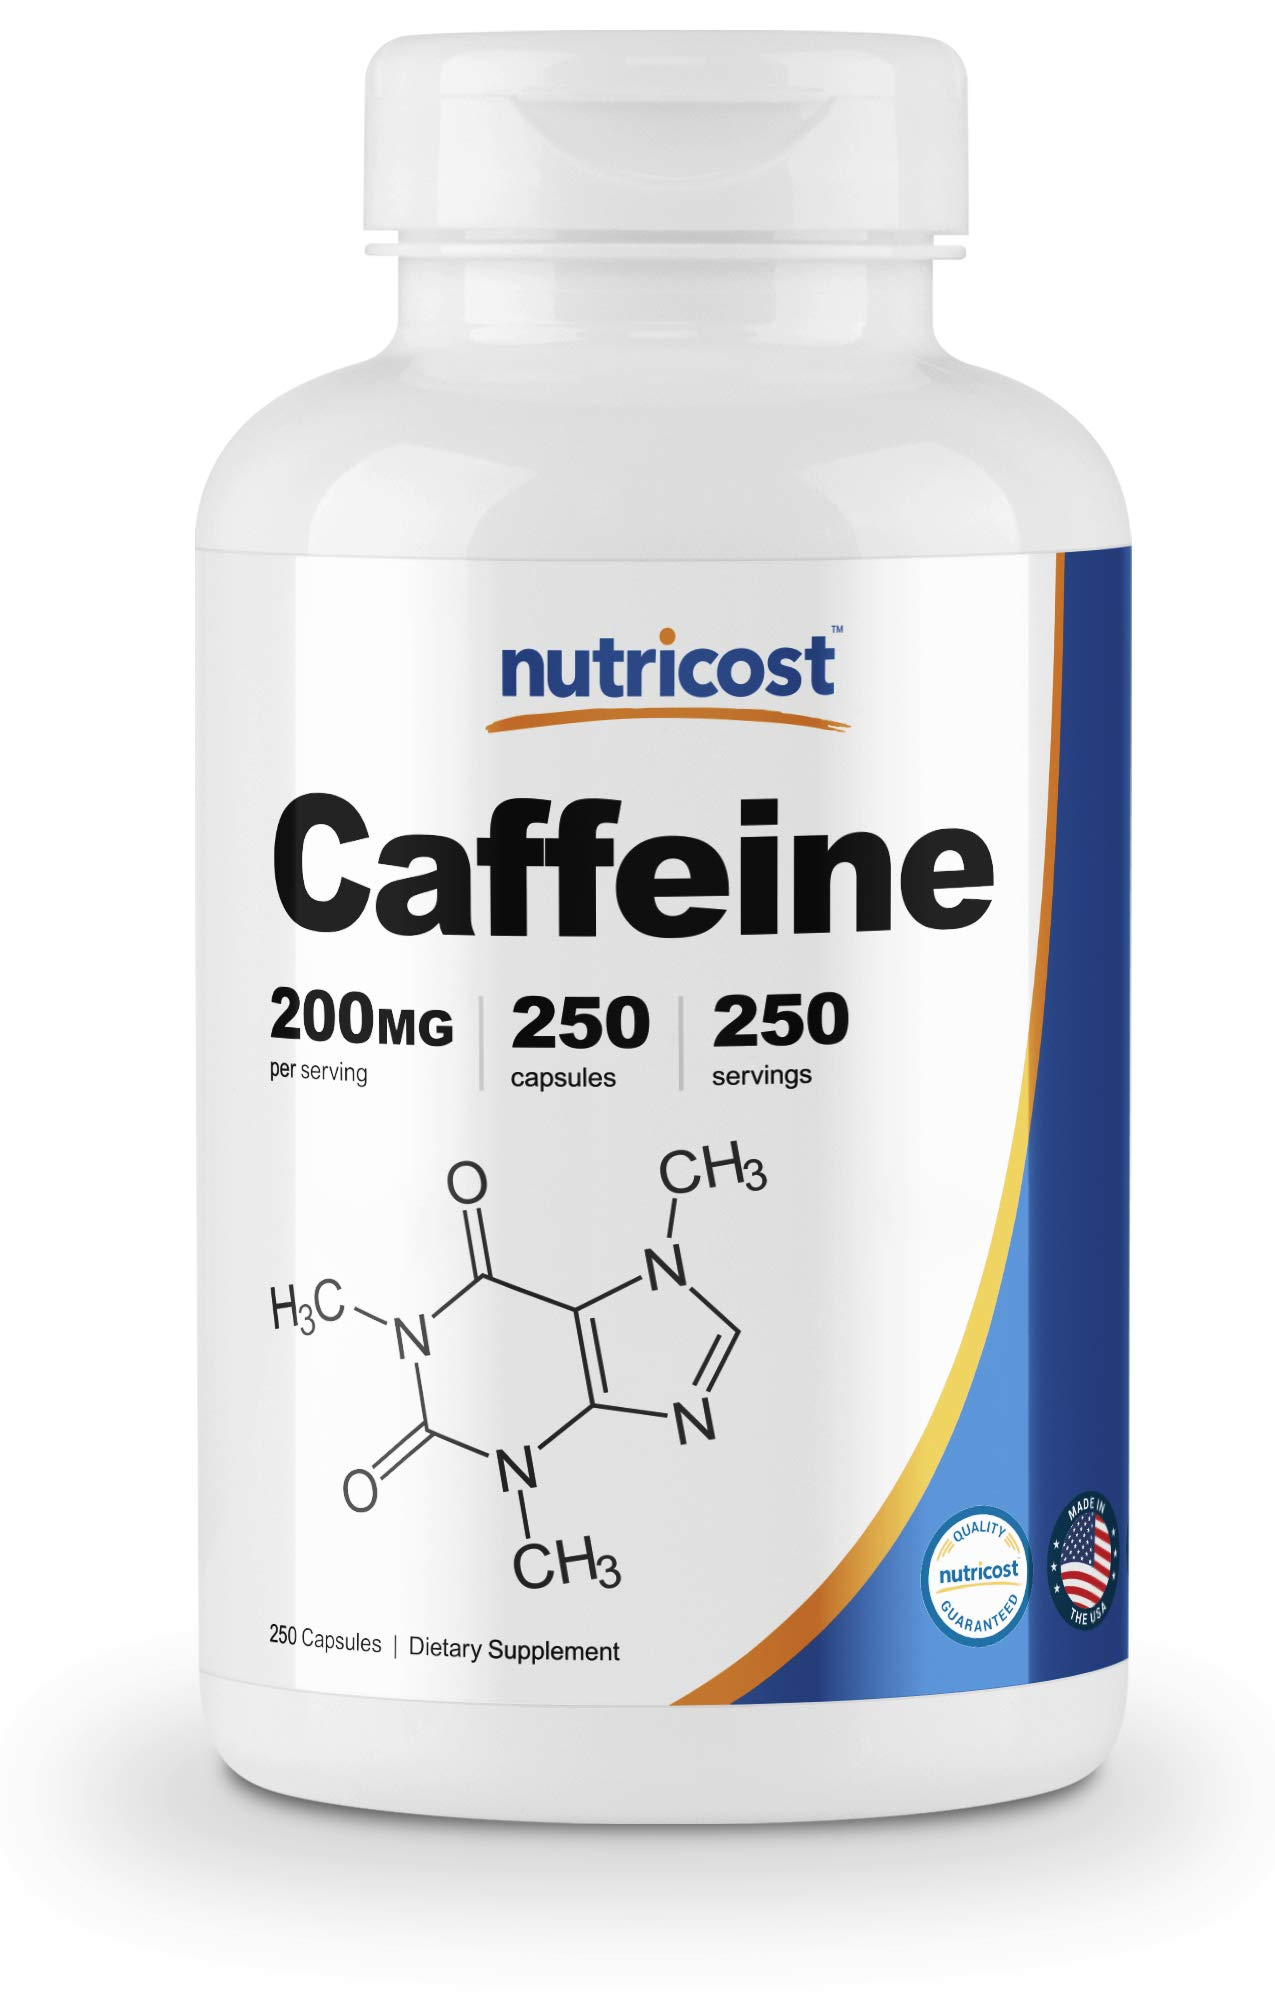 Nutricost Caffeine Pills, 200mg Per Serving (250 Caps) by Nutricost